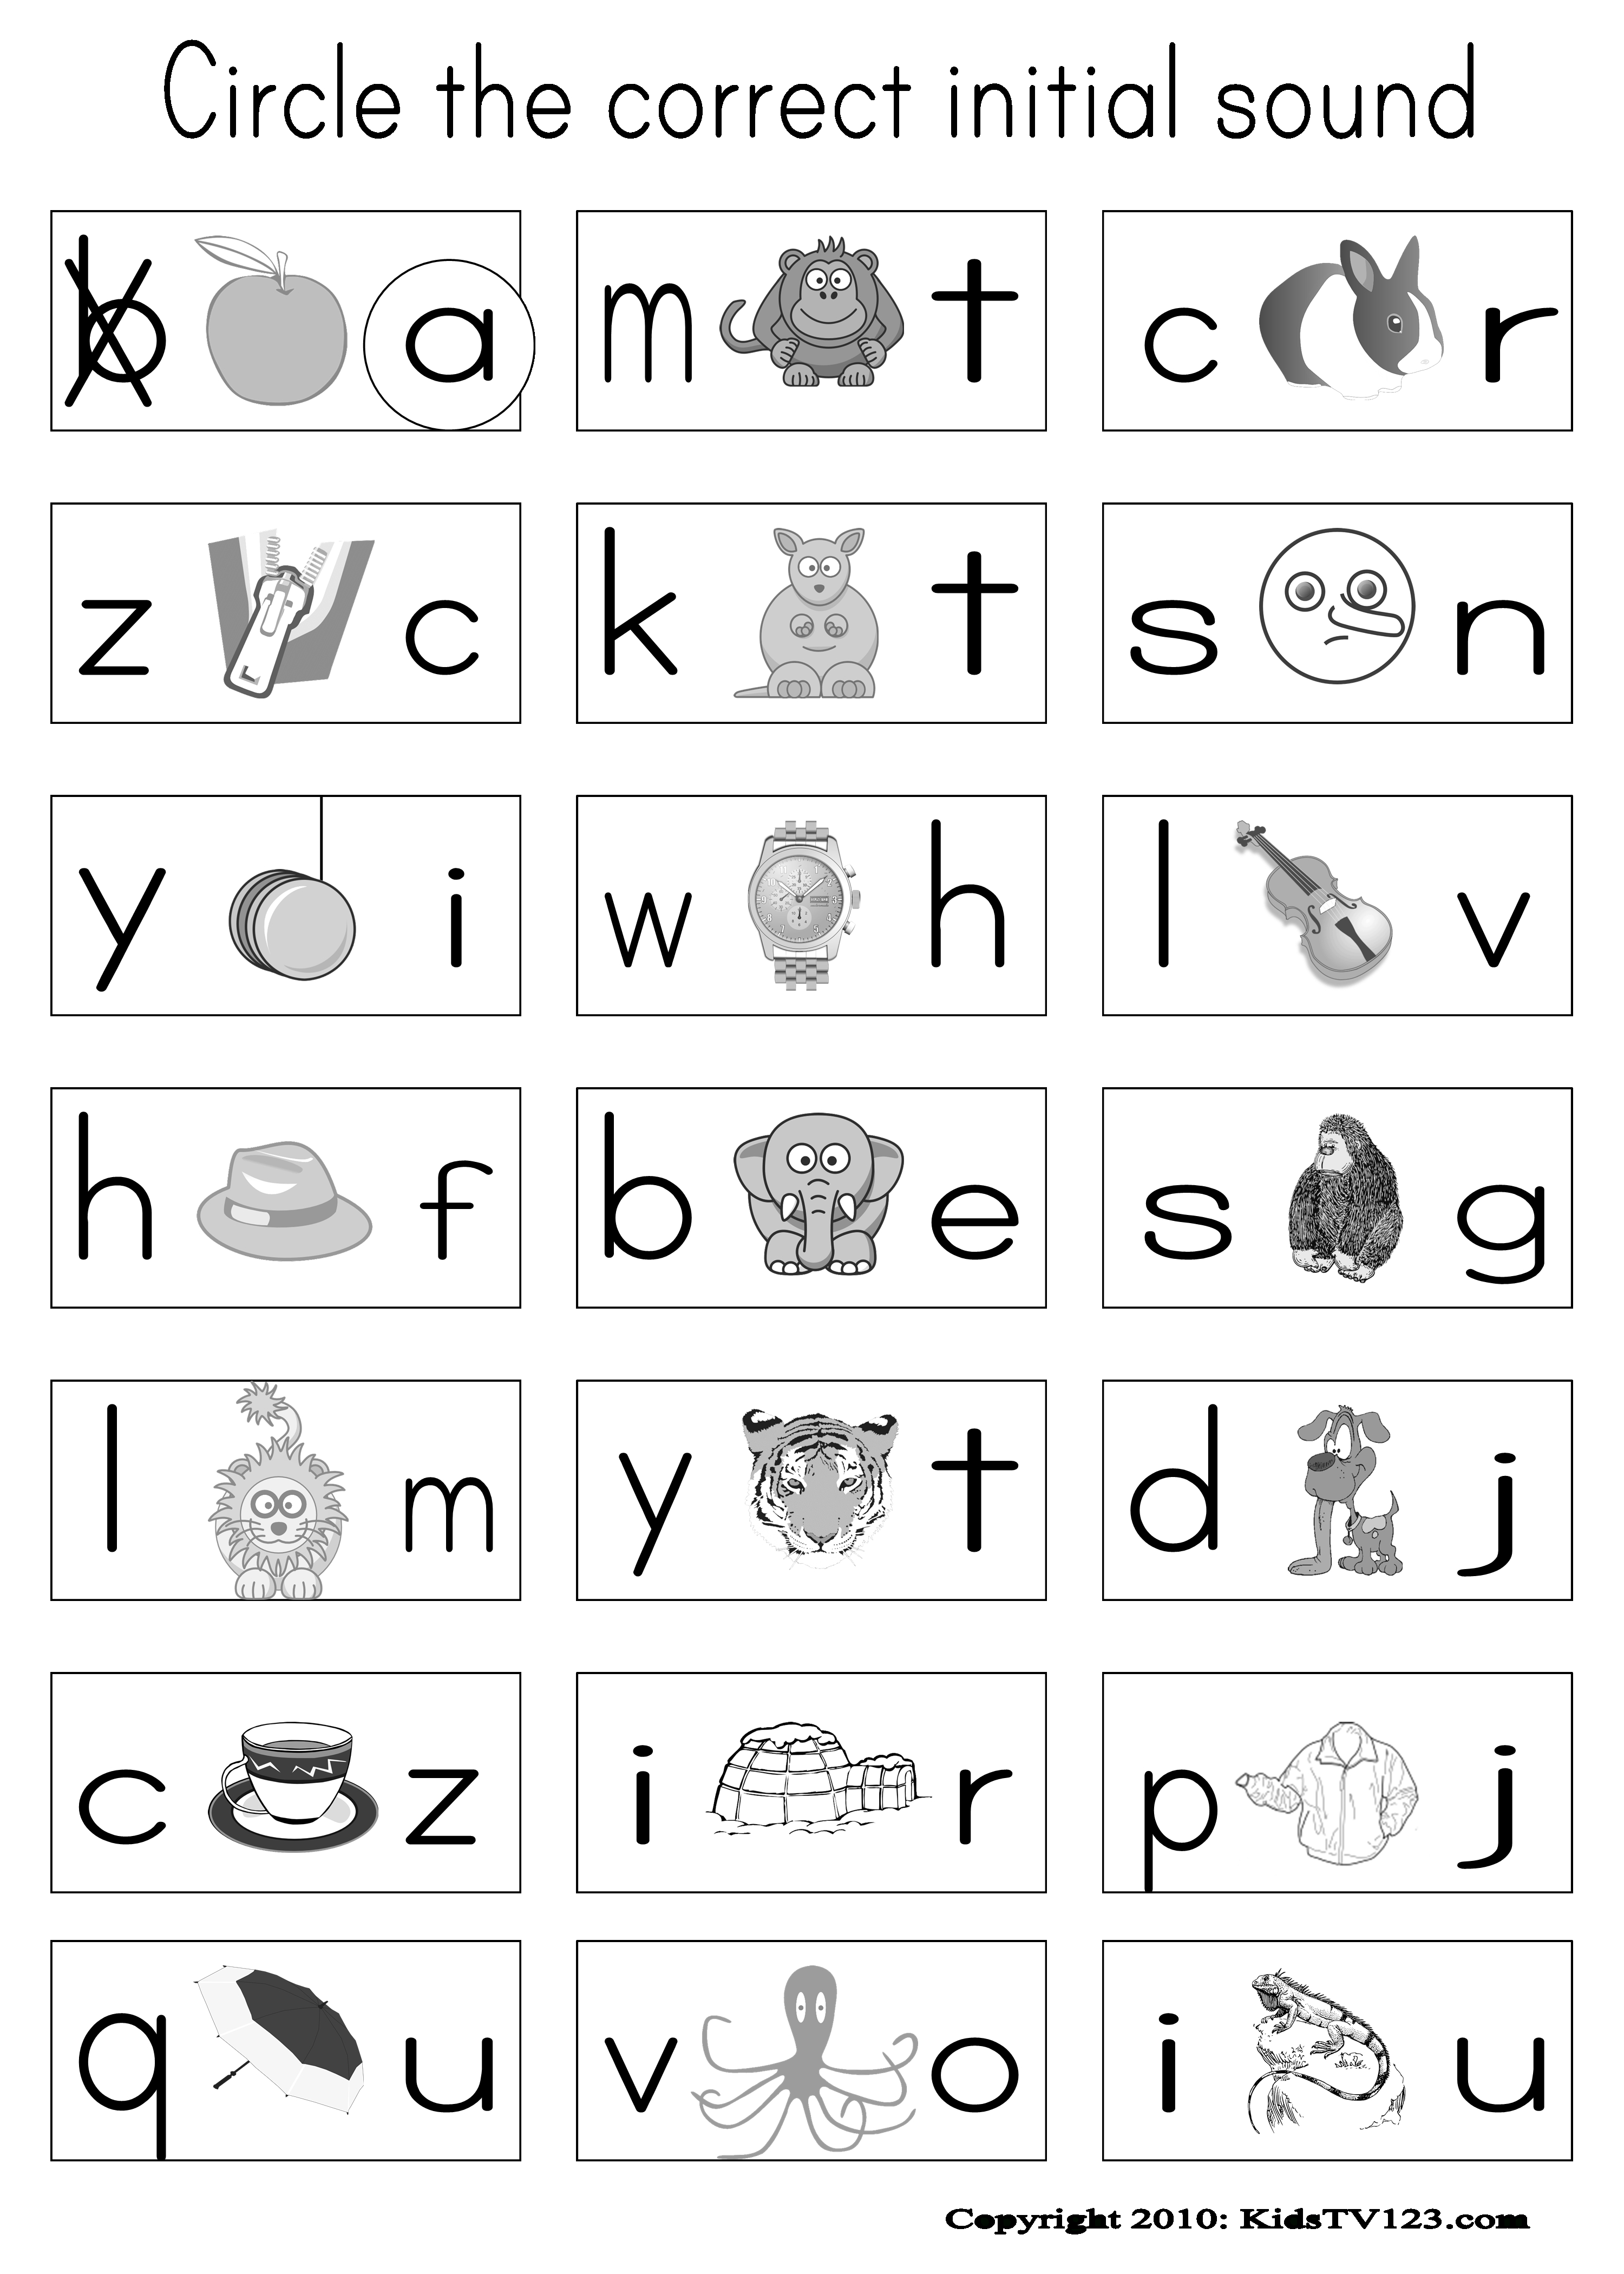 Kidstv123 - Phonics Worksheets | Classroom-Reading & Phonics | Phonics Worksheets For Adults Printable